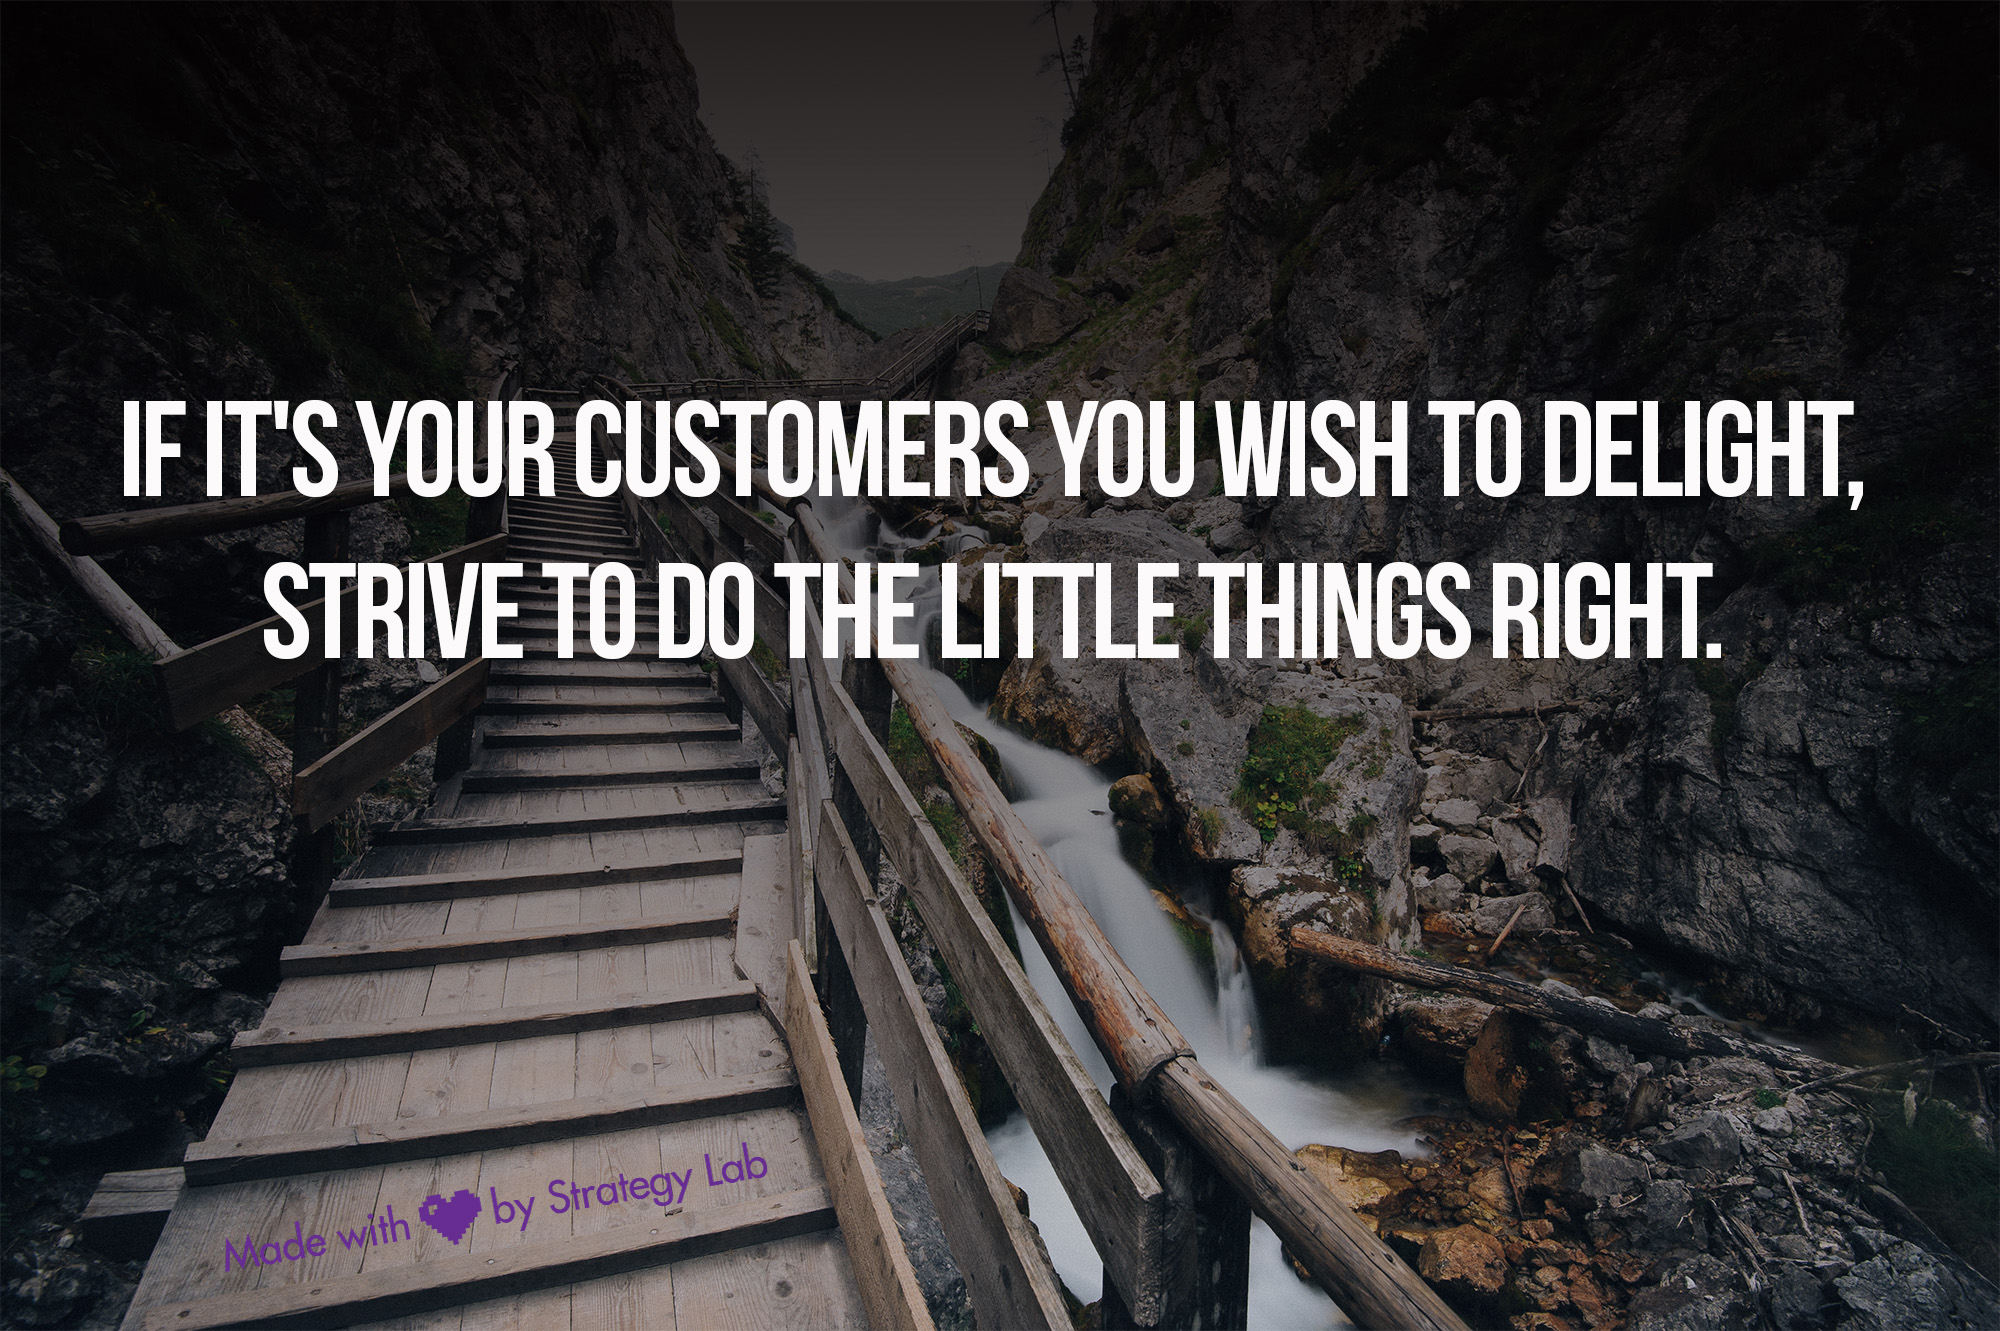 if-its-your-customers-you-wish-to-delight-strive-to-do-the-little-things-right